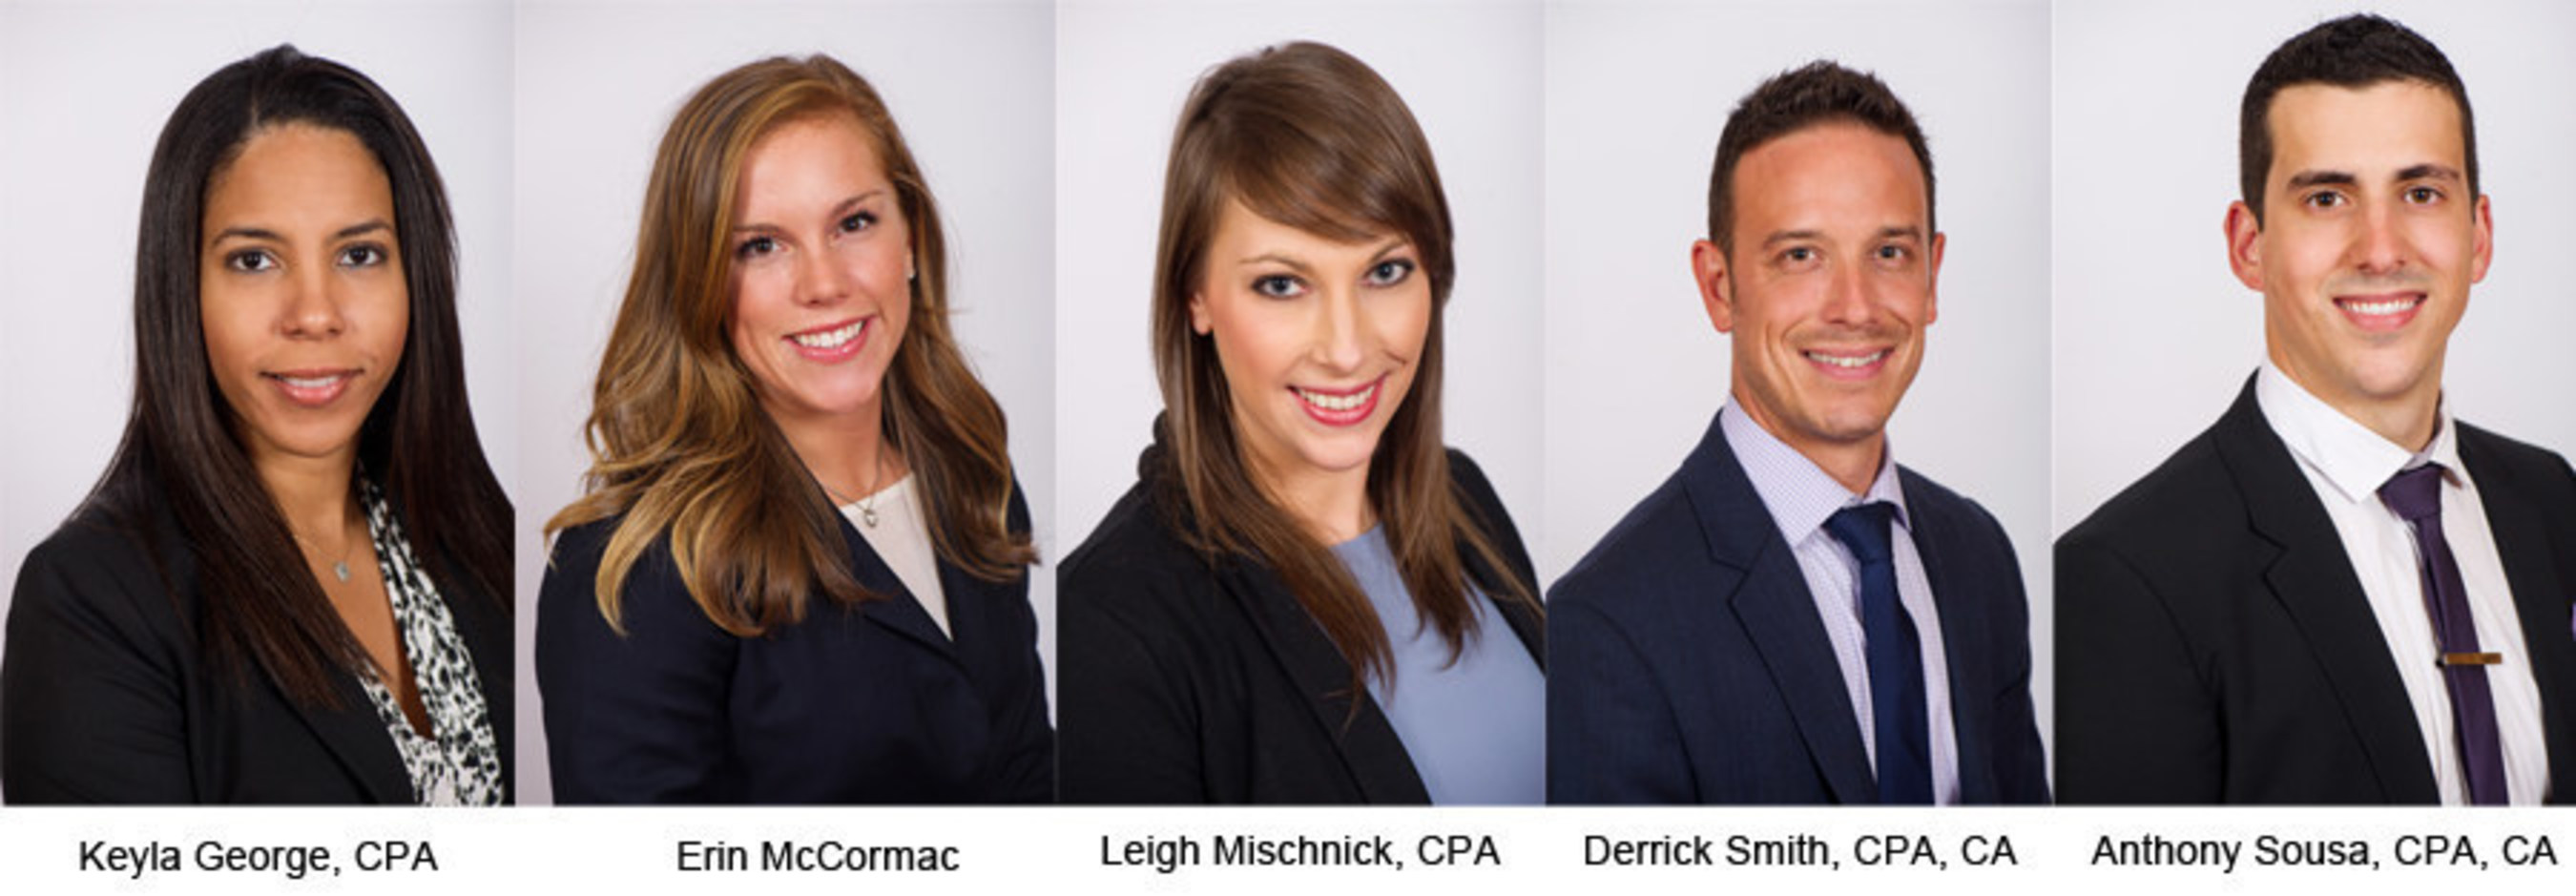 The Siegfried Group Welcomes New Professionals from the Houston and South Florida Markets for New